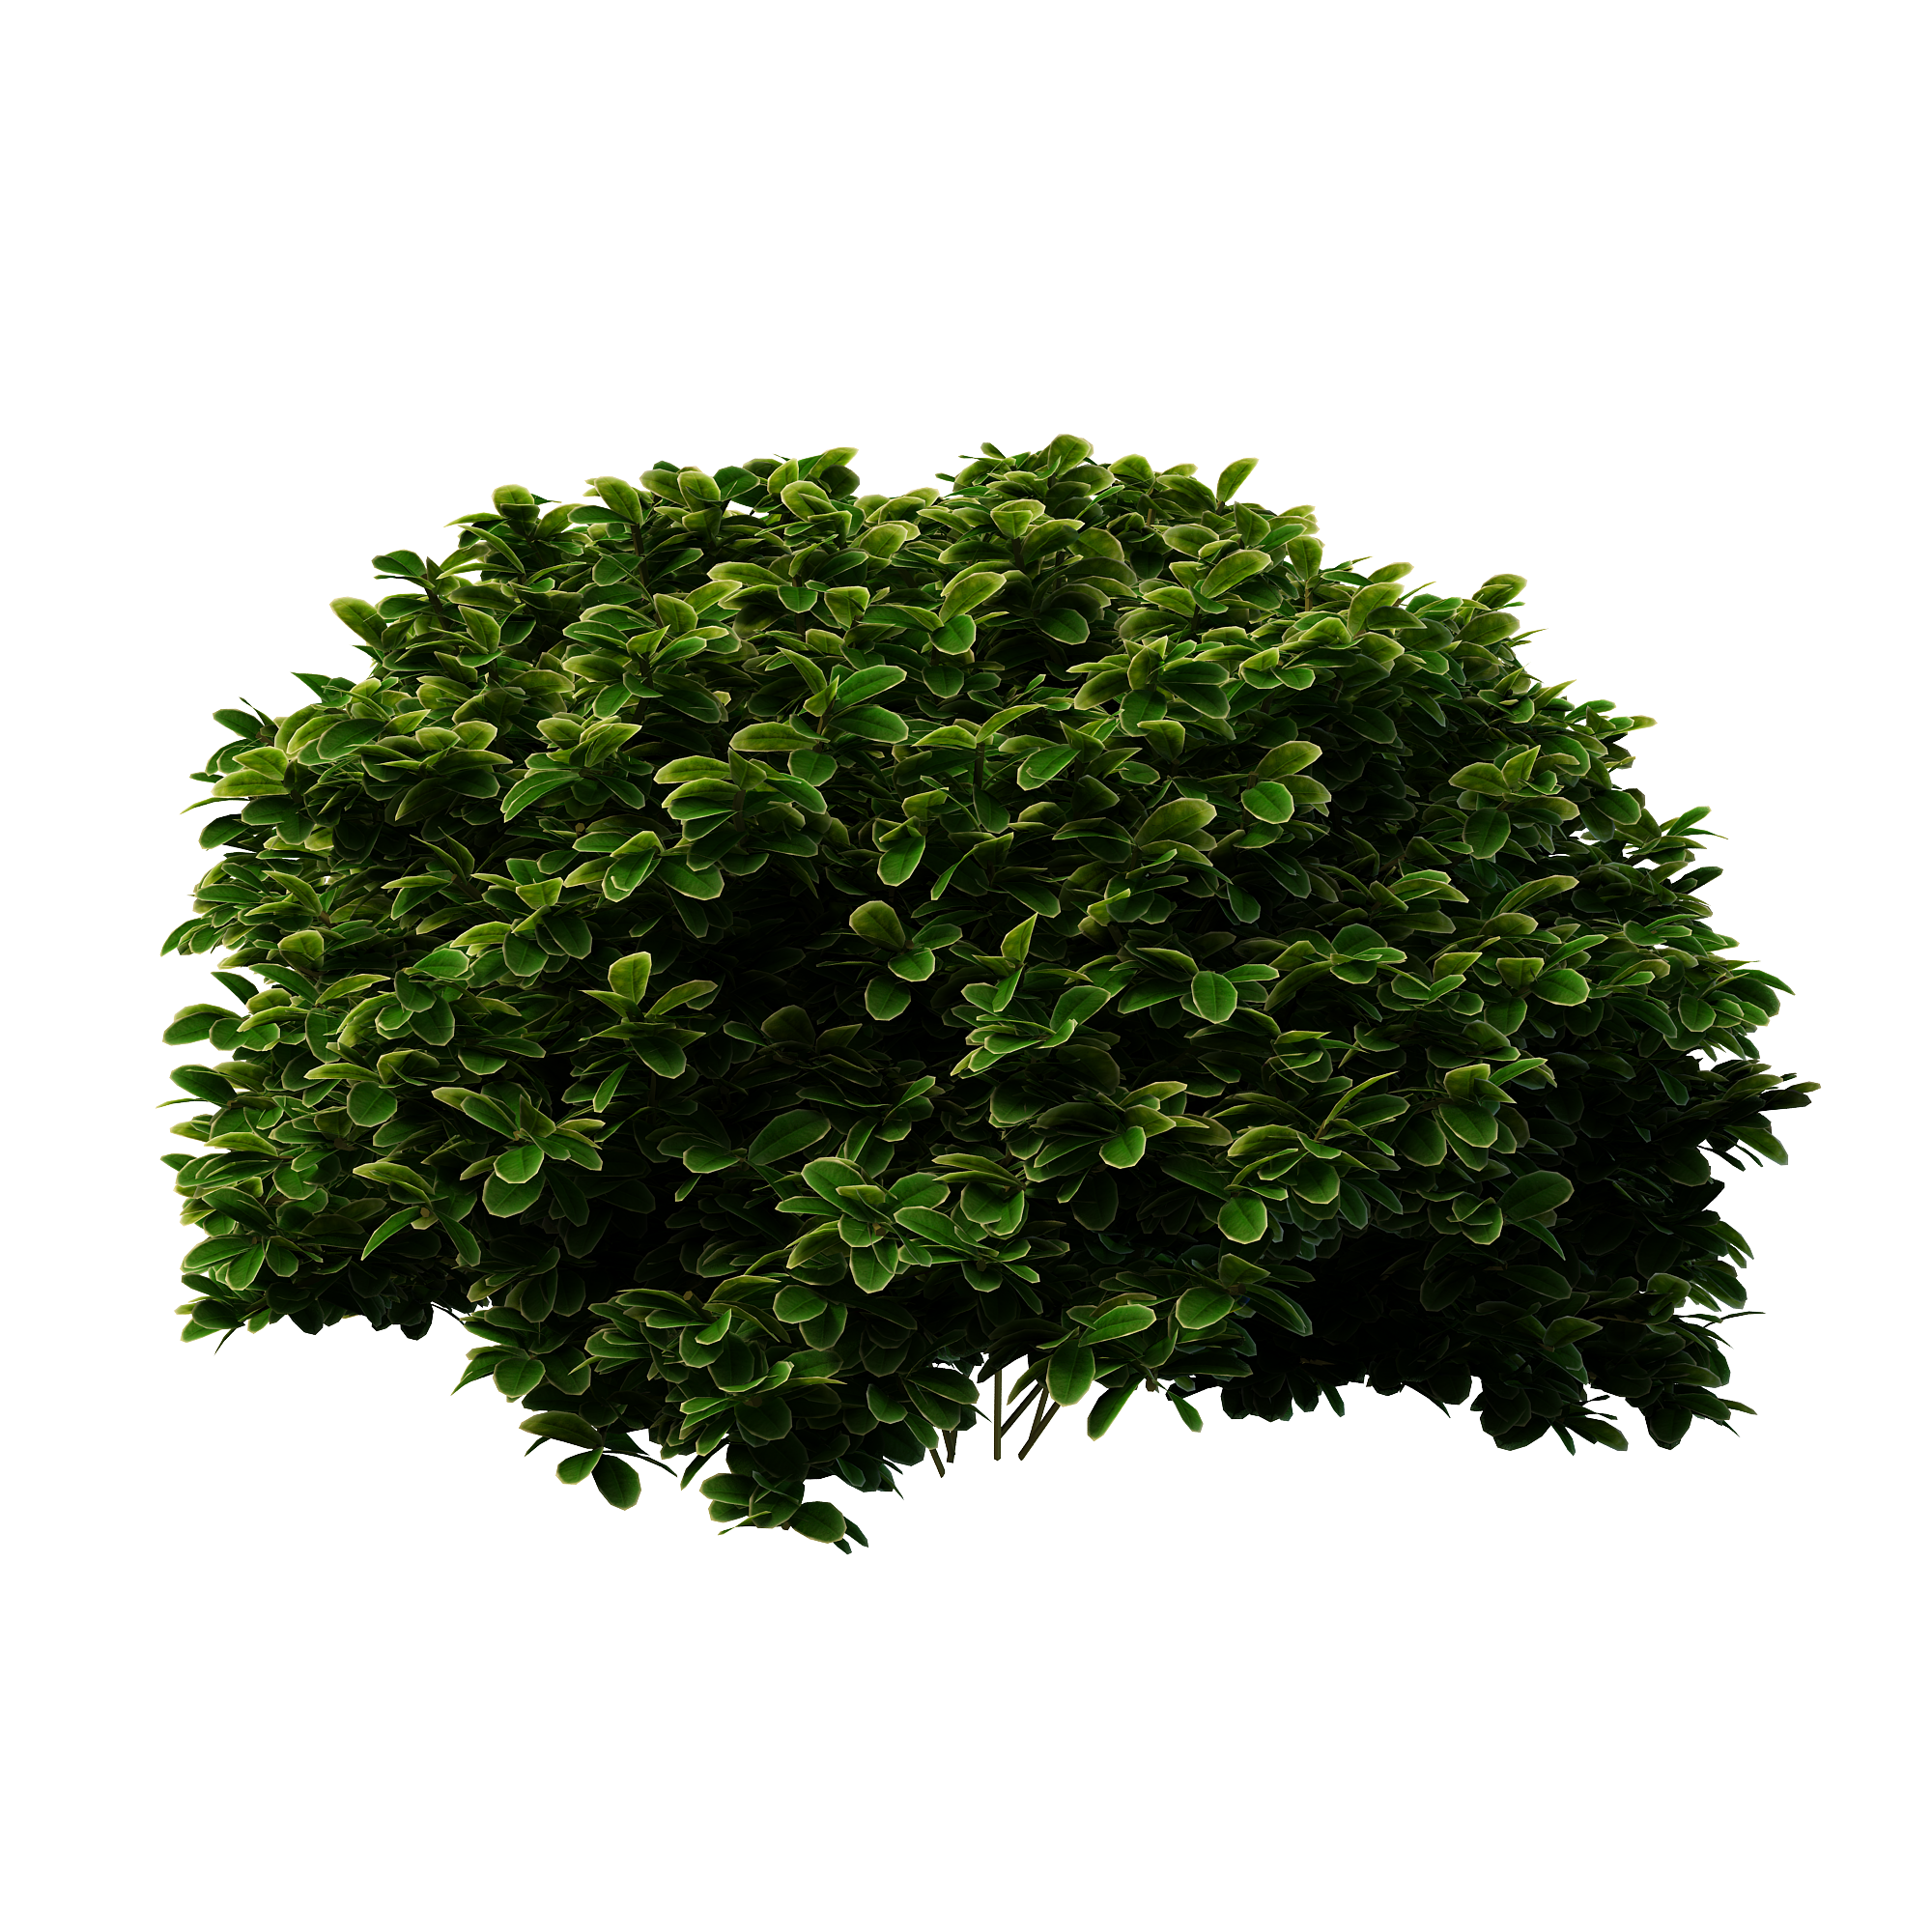 Green bushes png. Bush transparent pictures free